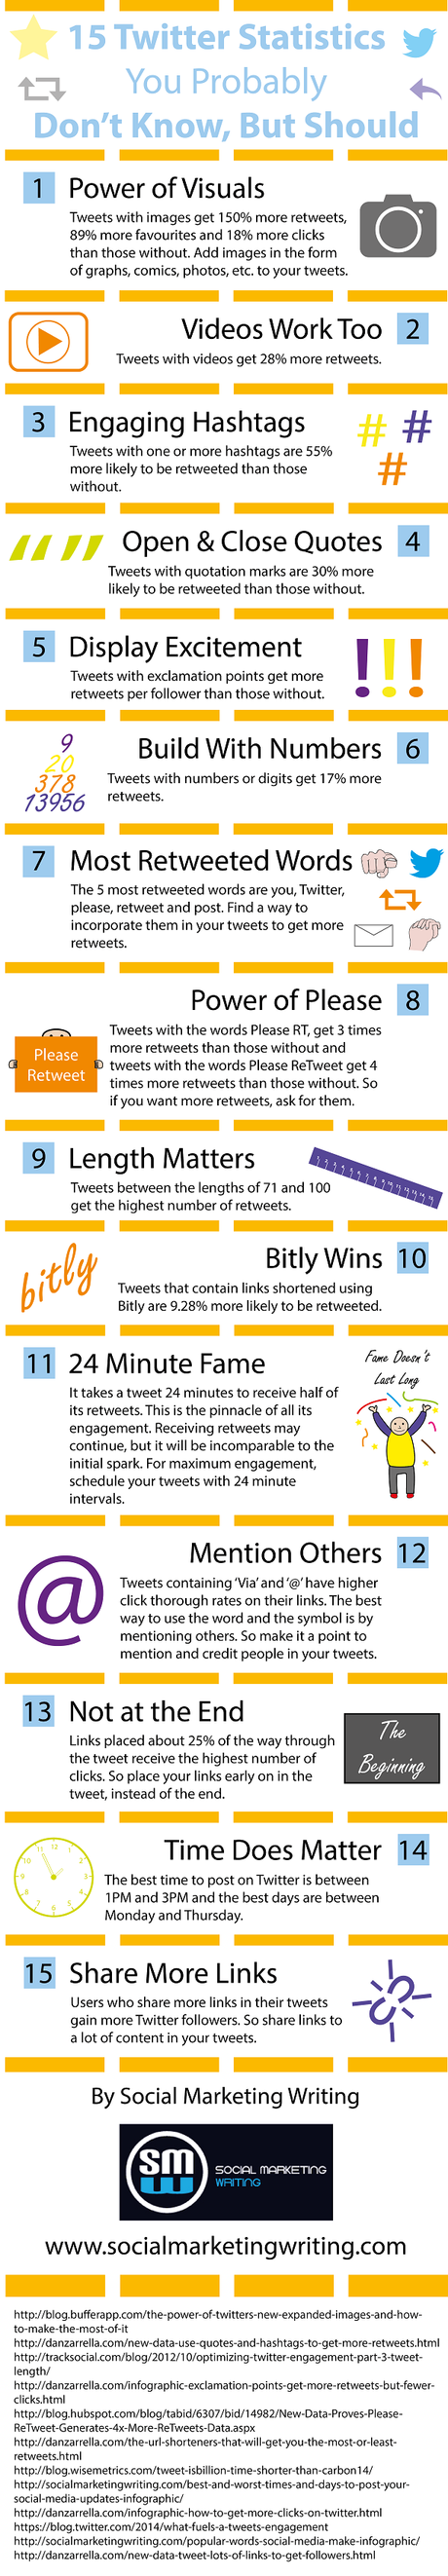 Infographie : comment augmenter la probabilité dêtre retweeté ?